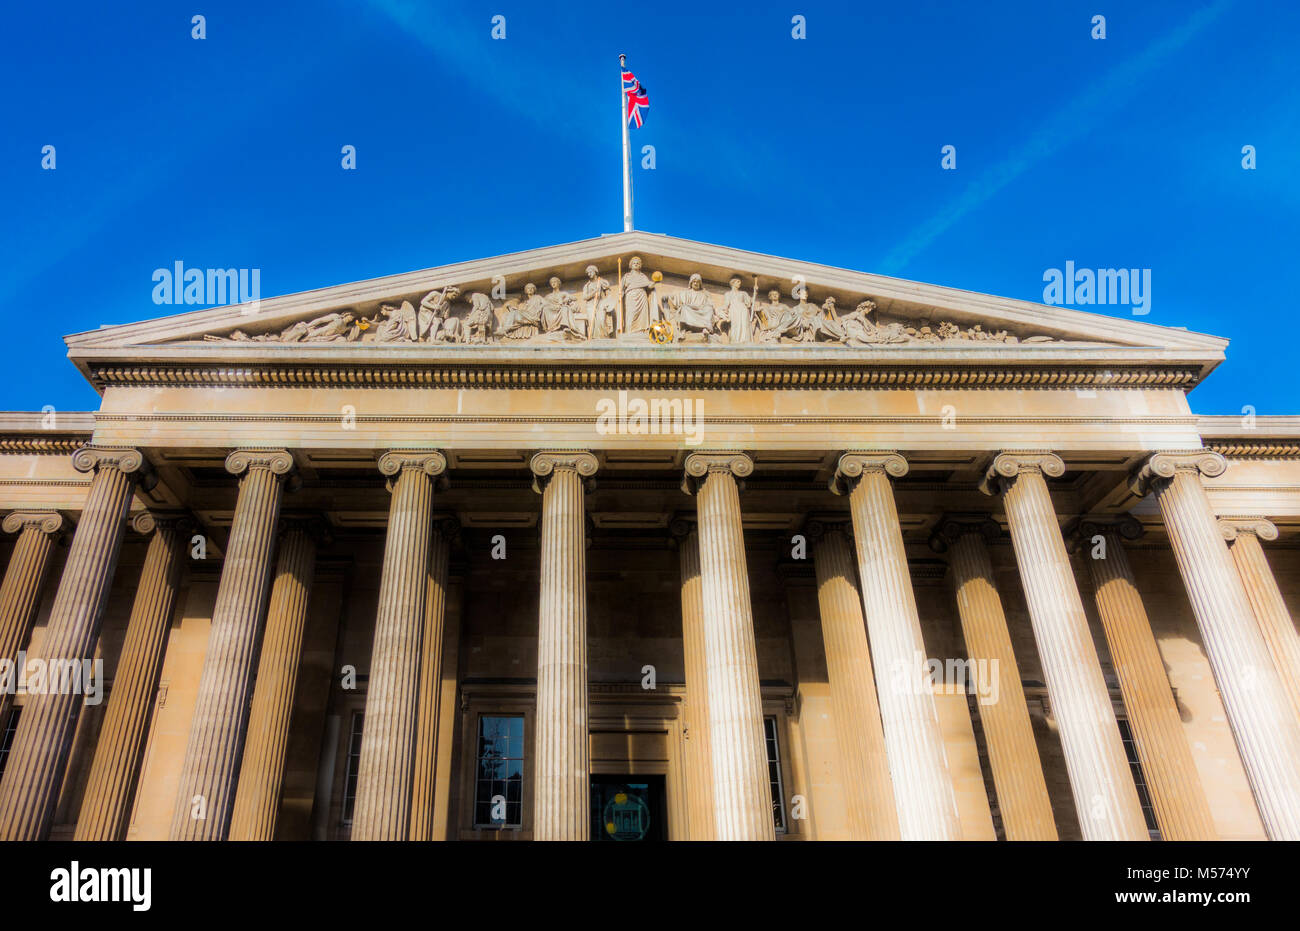 Closeup of portico and pediment sculptures at main entrance of British Museum (dedicated to human history, art and Stock Photo